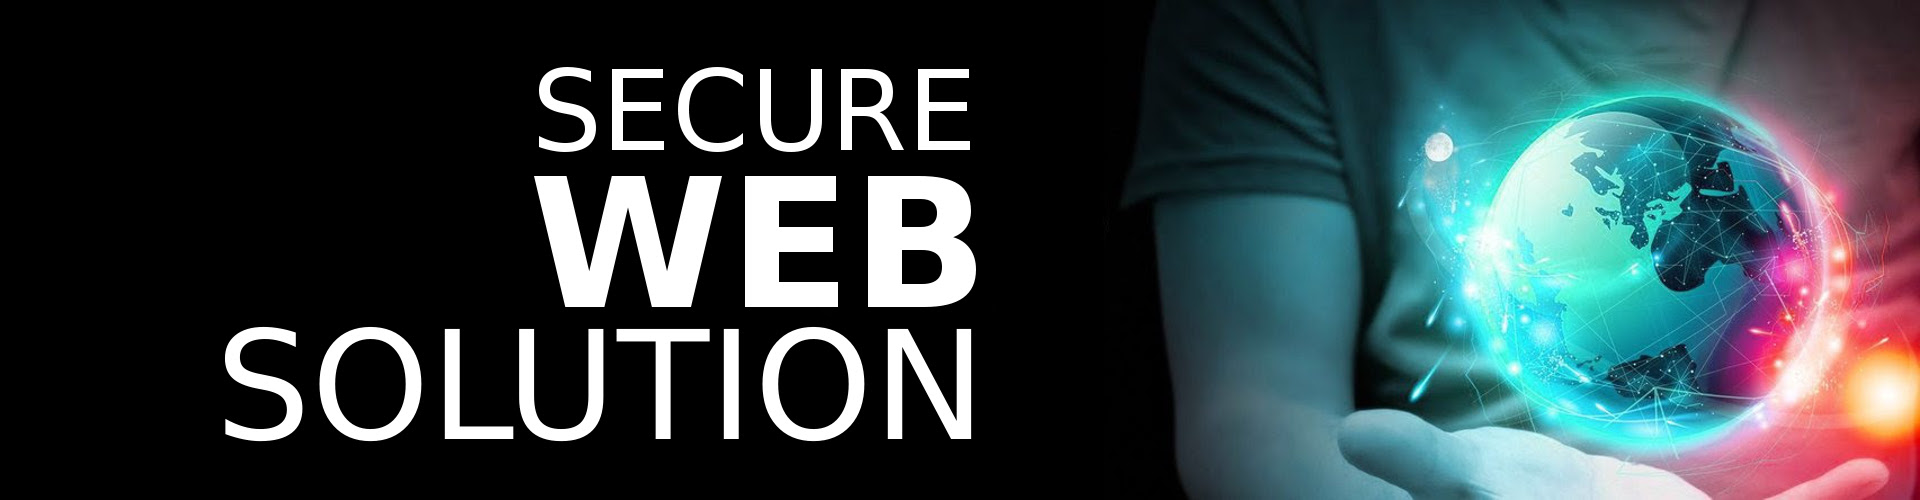 SECURE WEB SOLUTION